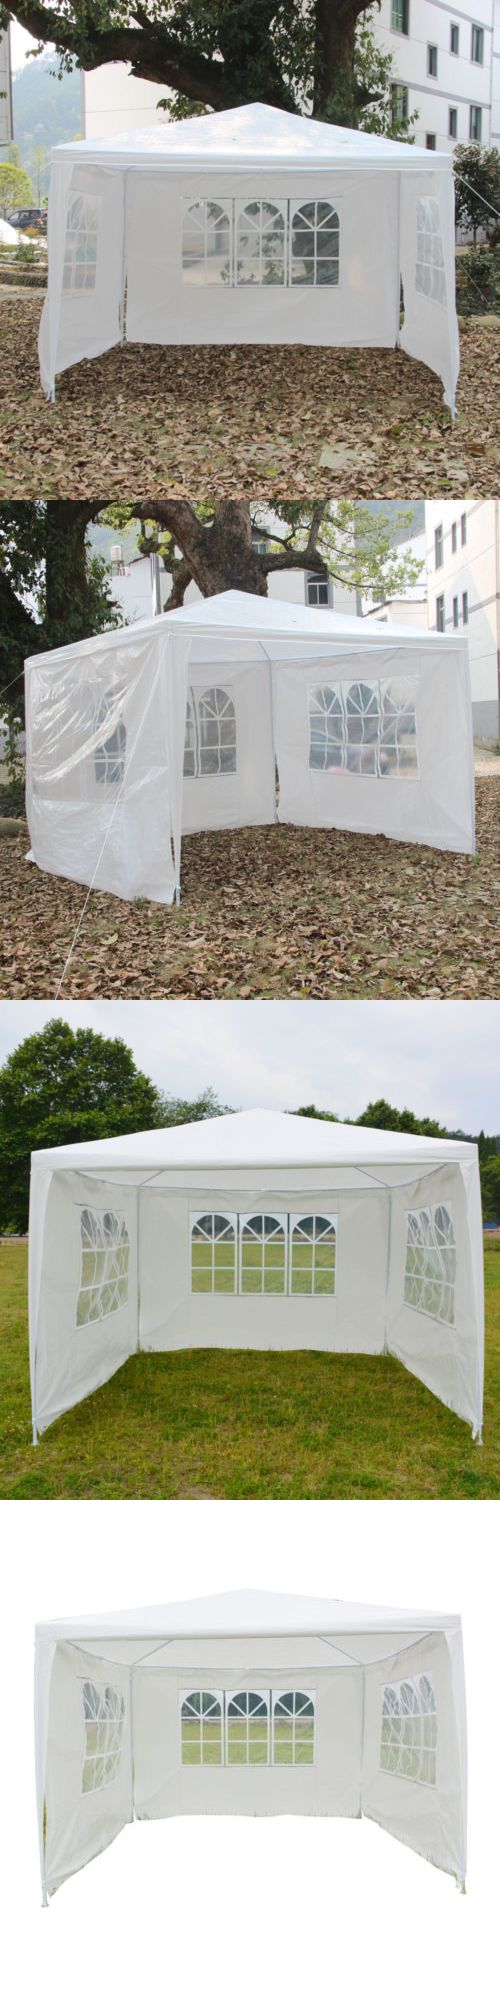 Details About 10 X10 Garden Outdoor Canopy Party Wedding Tent Gazebo Pavilion W 3 Window Wall Canopy Outdoor Outdoor Gardens Gazebo